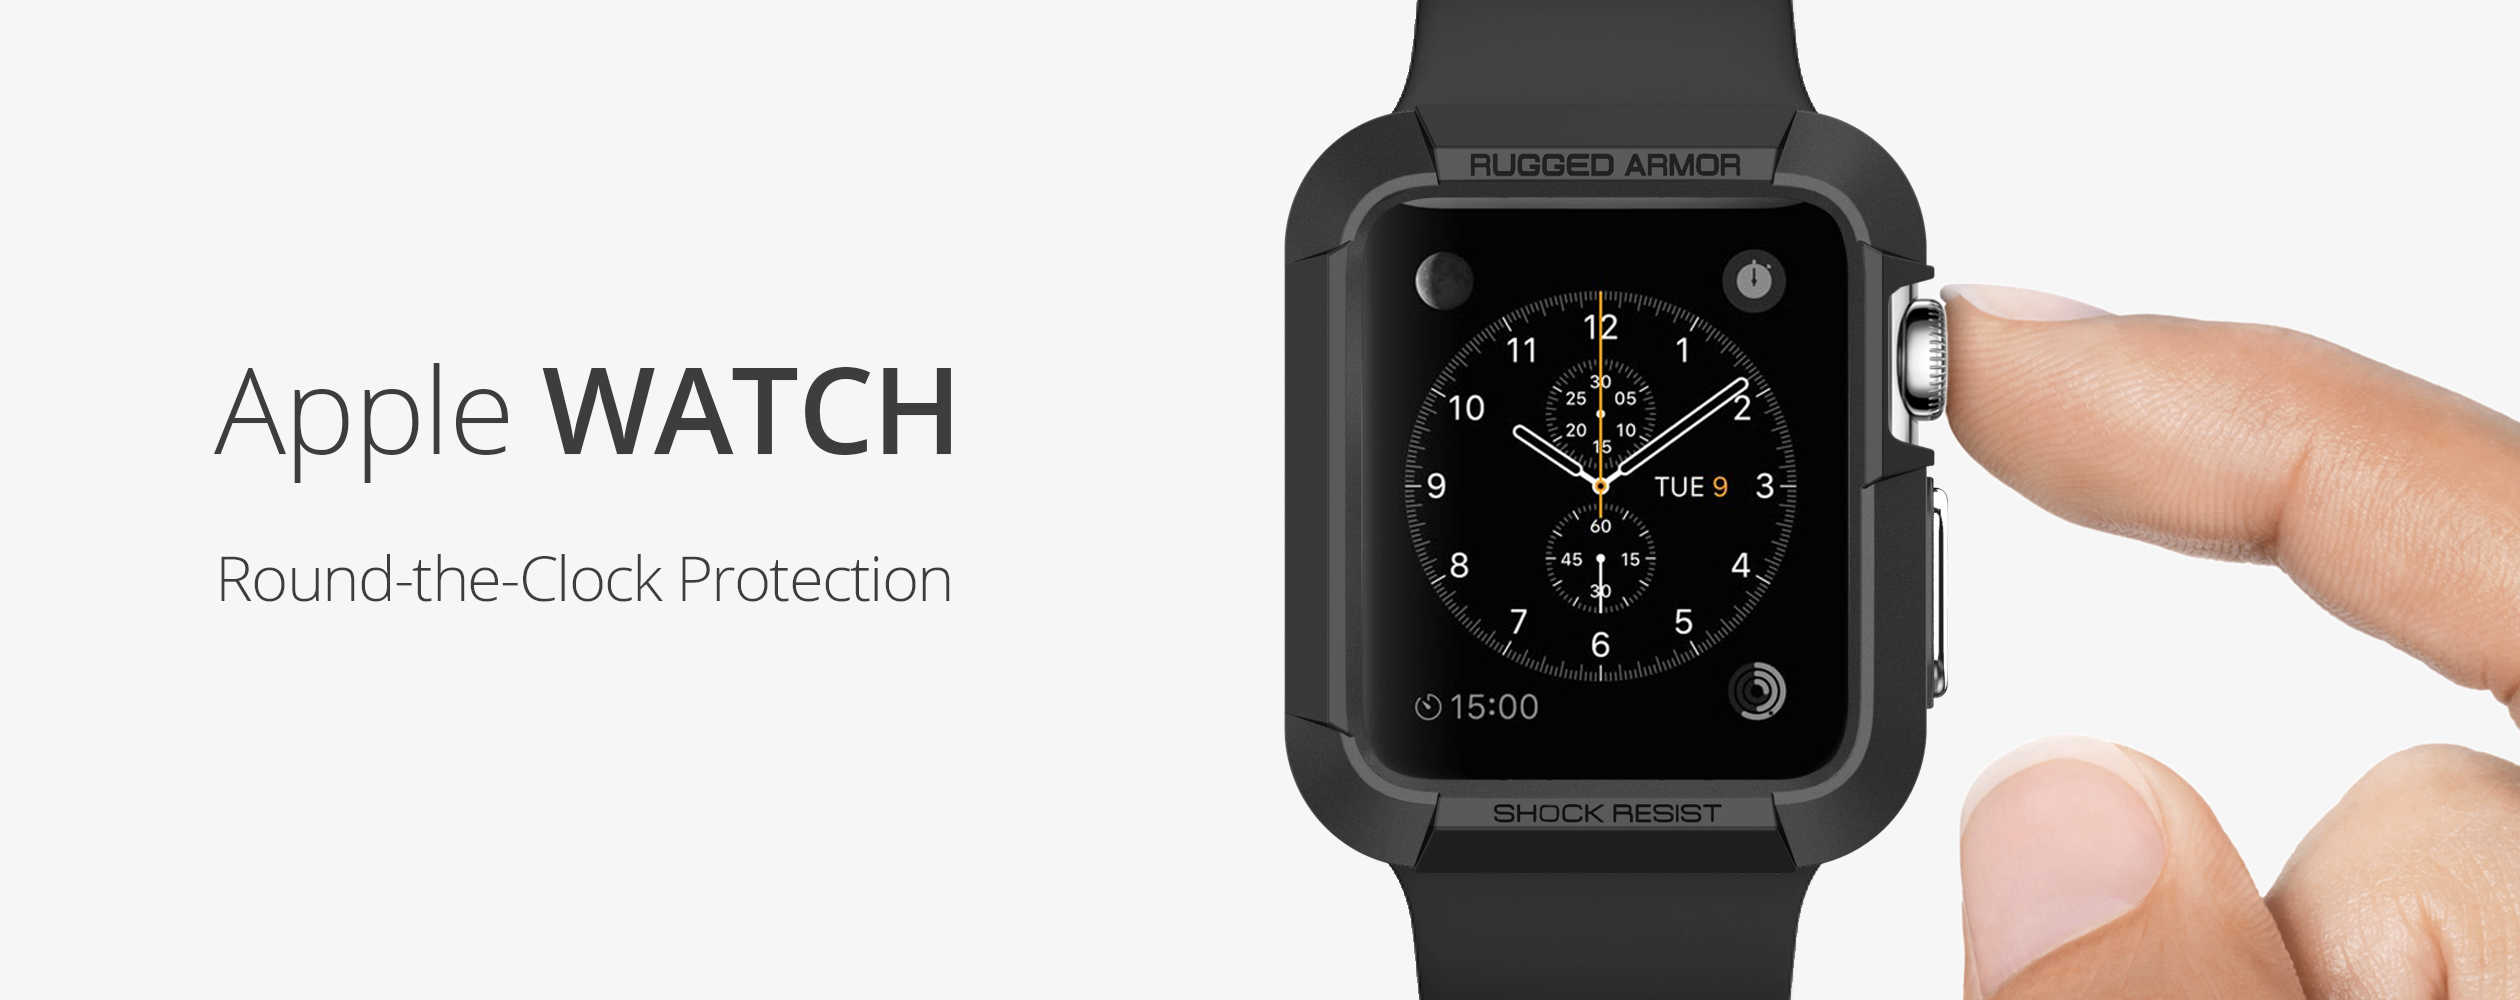 Spigen-Apple-Watch-case